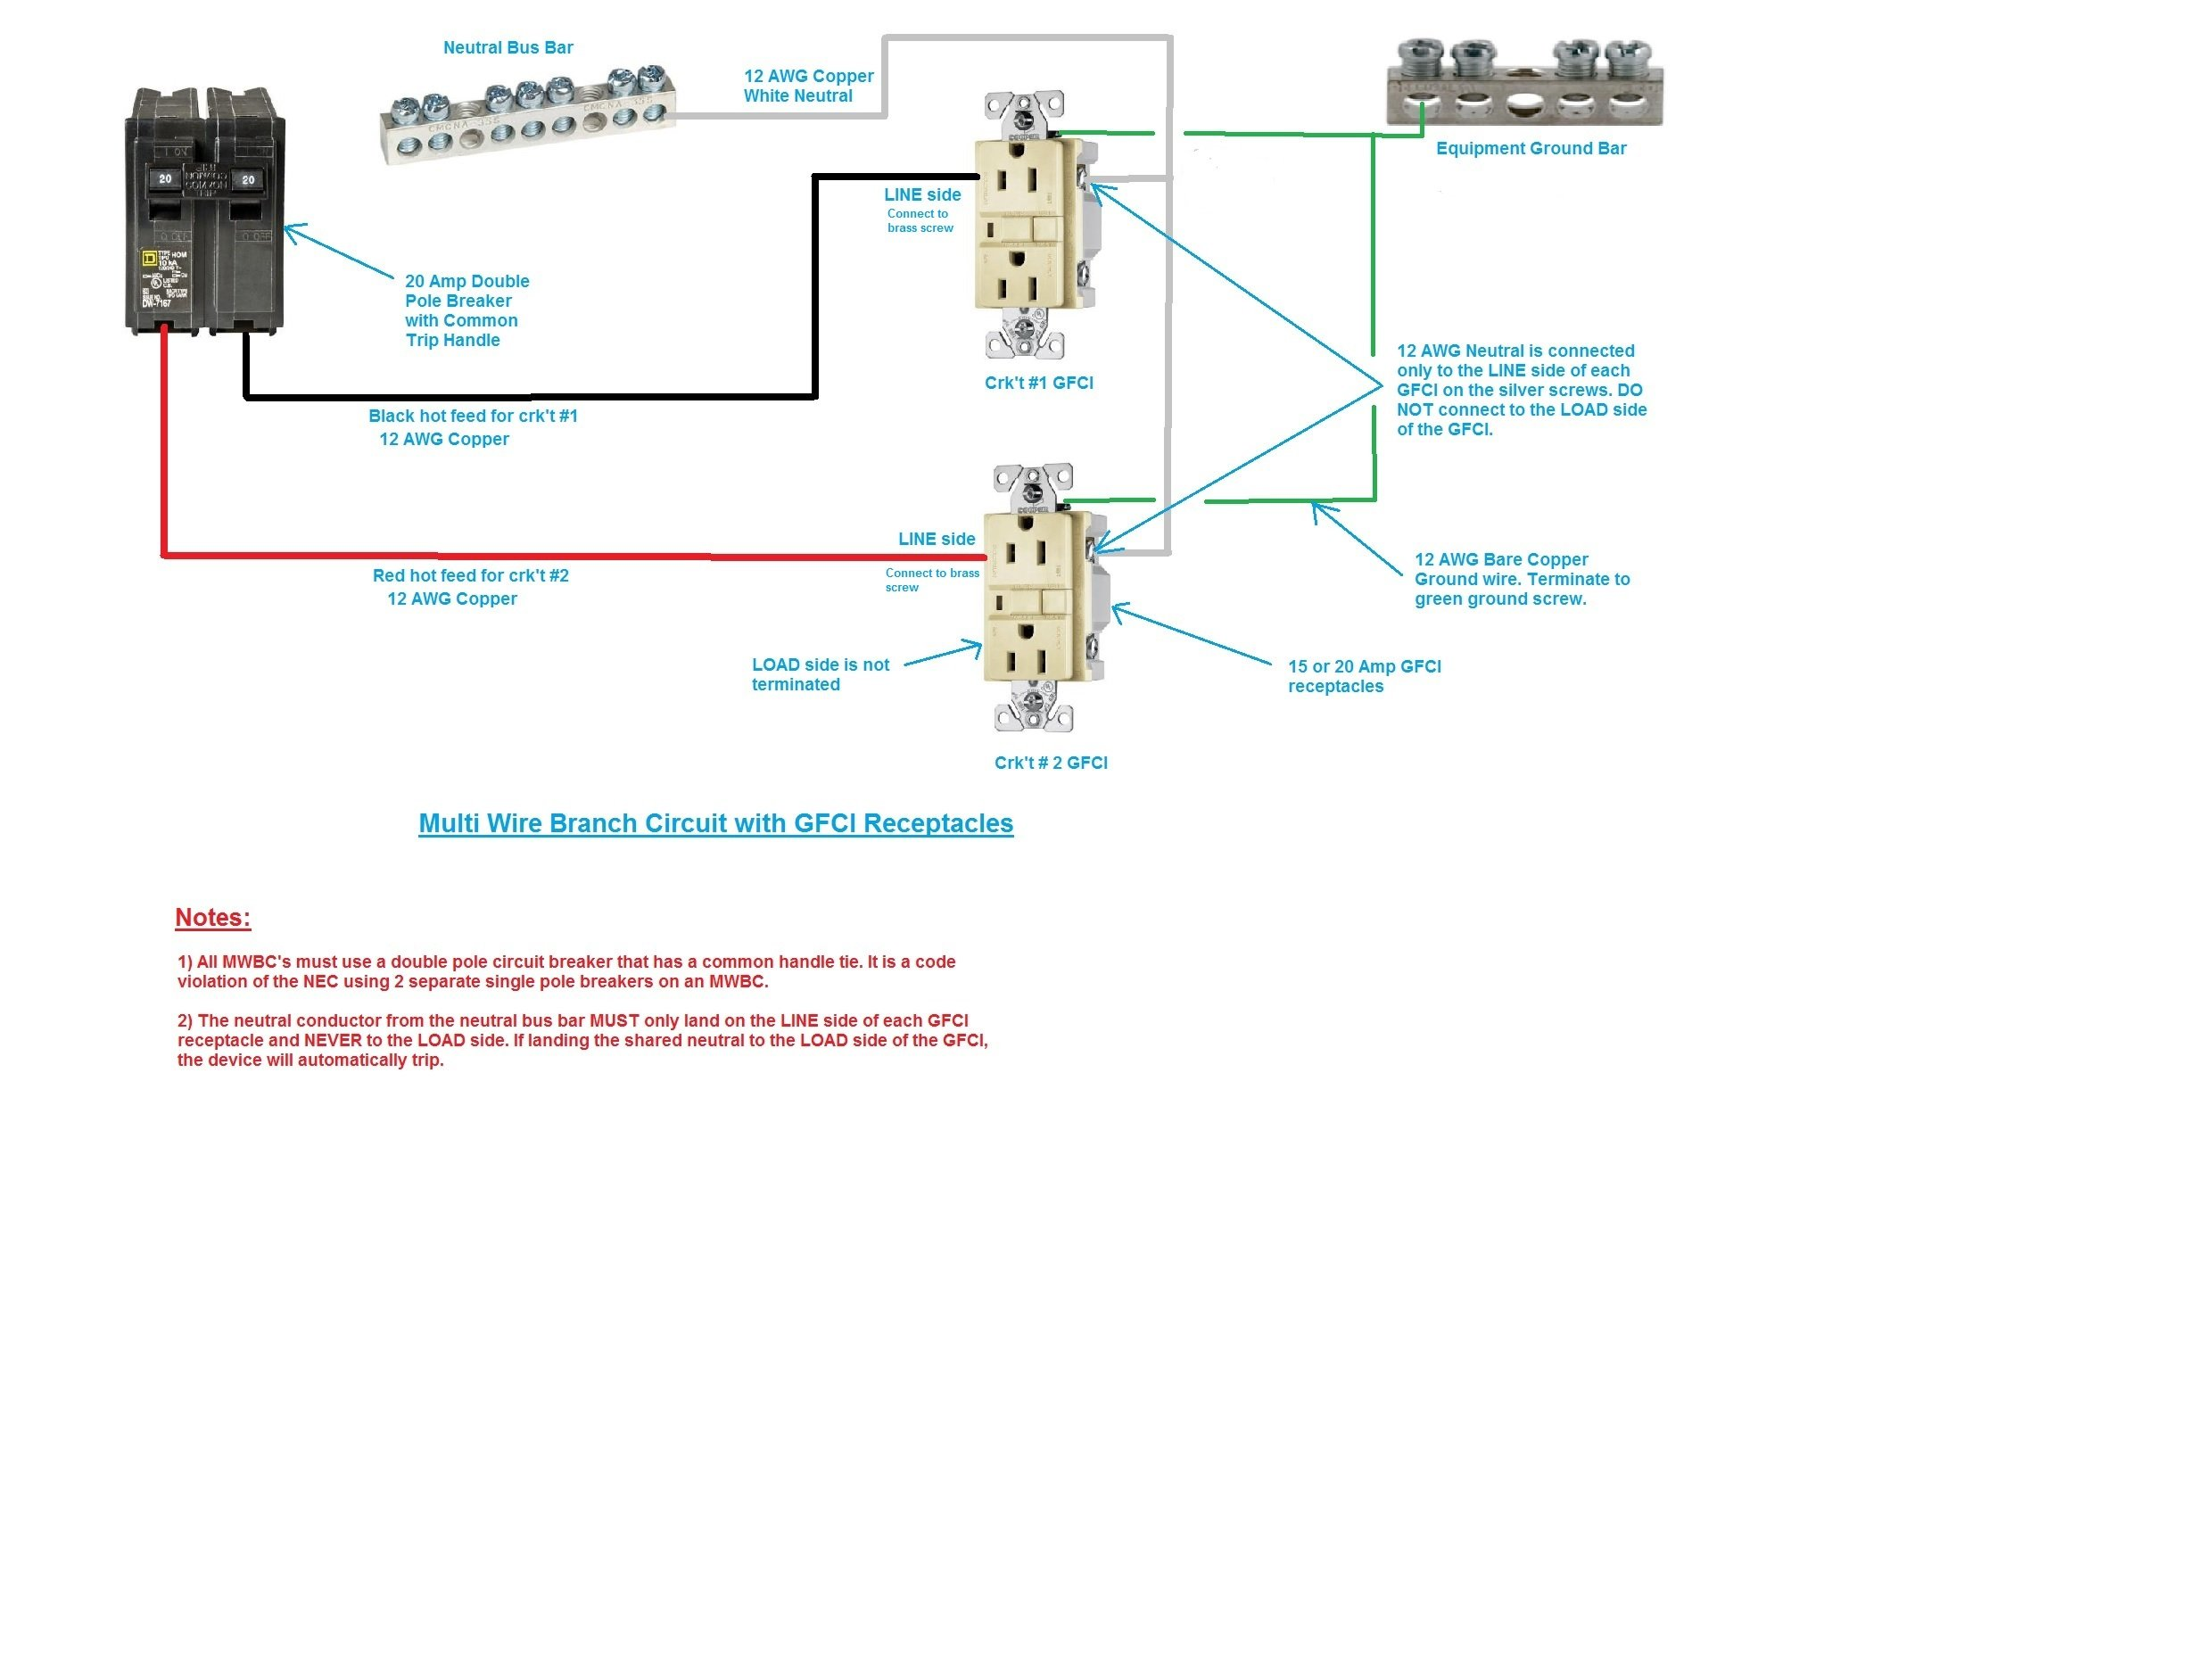 Nec Gfci Wiring Diagram | Wiring Diagram  Amp Gfci Wiring Diagrams on 240v breaker box wiring diagrams, kitchen lighting layout diagrams, separately derived system diagrams,